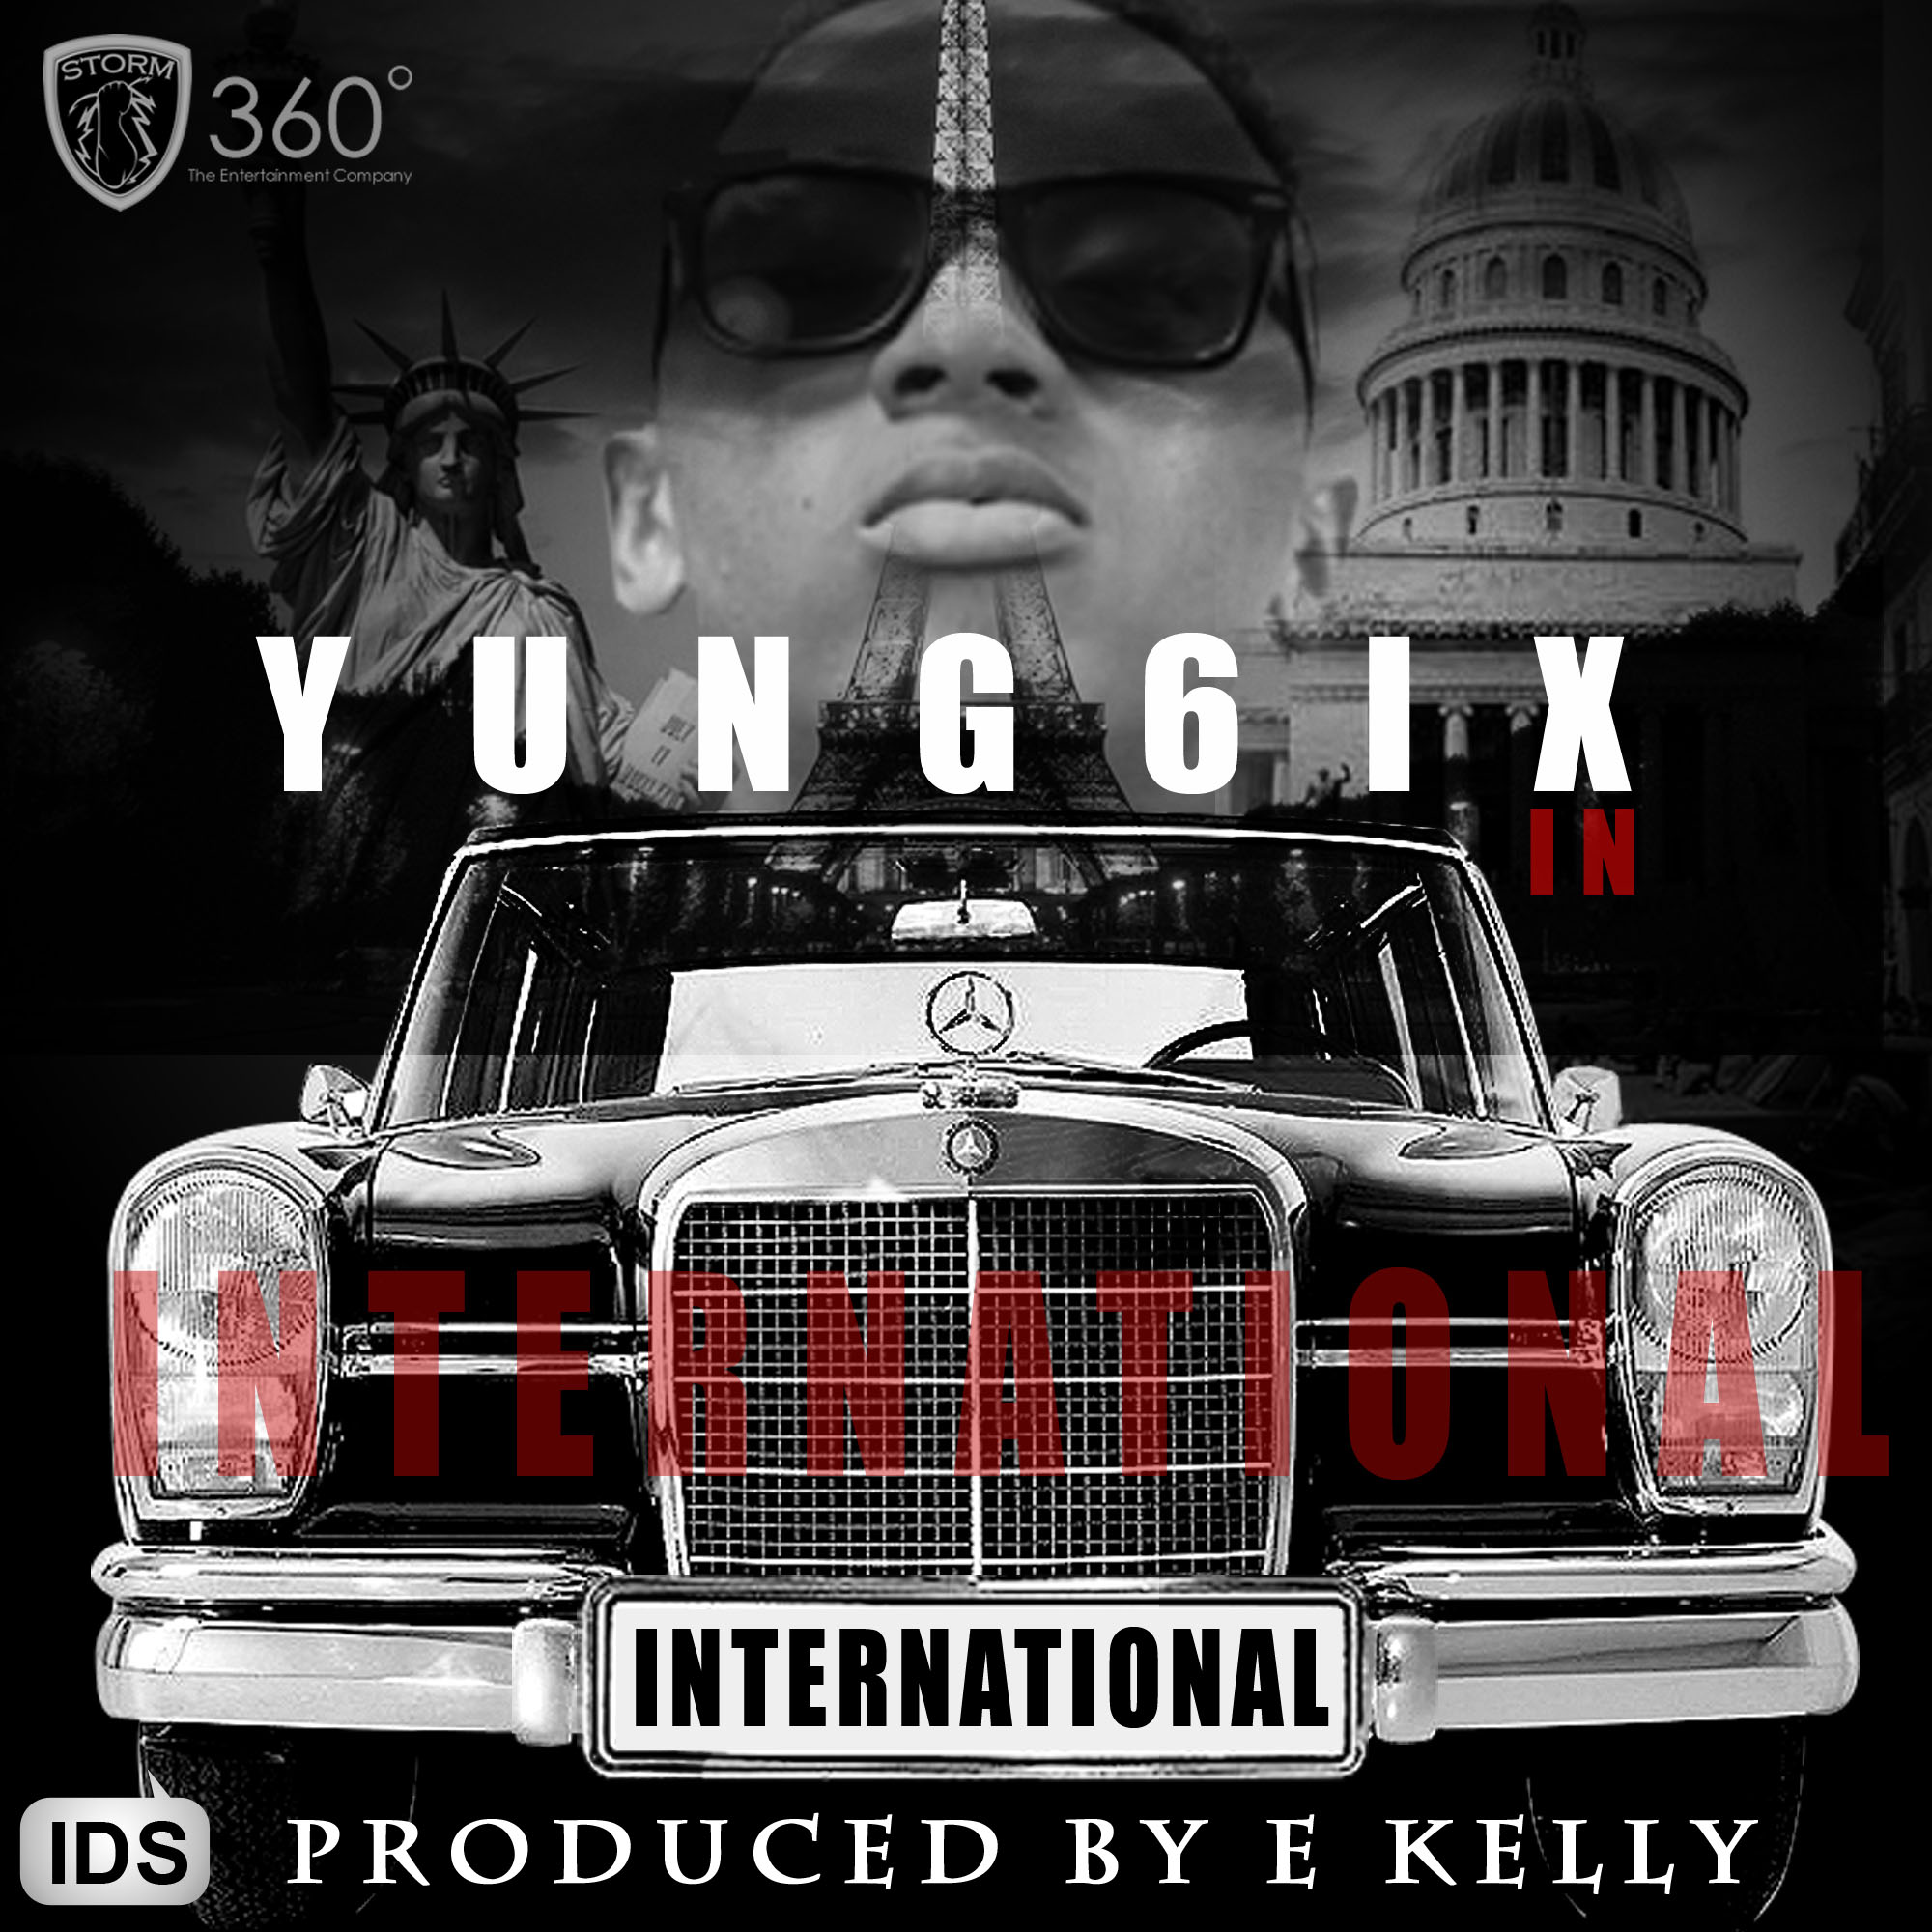 Yung6ix International art